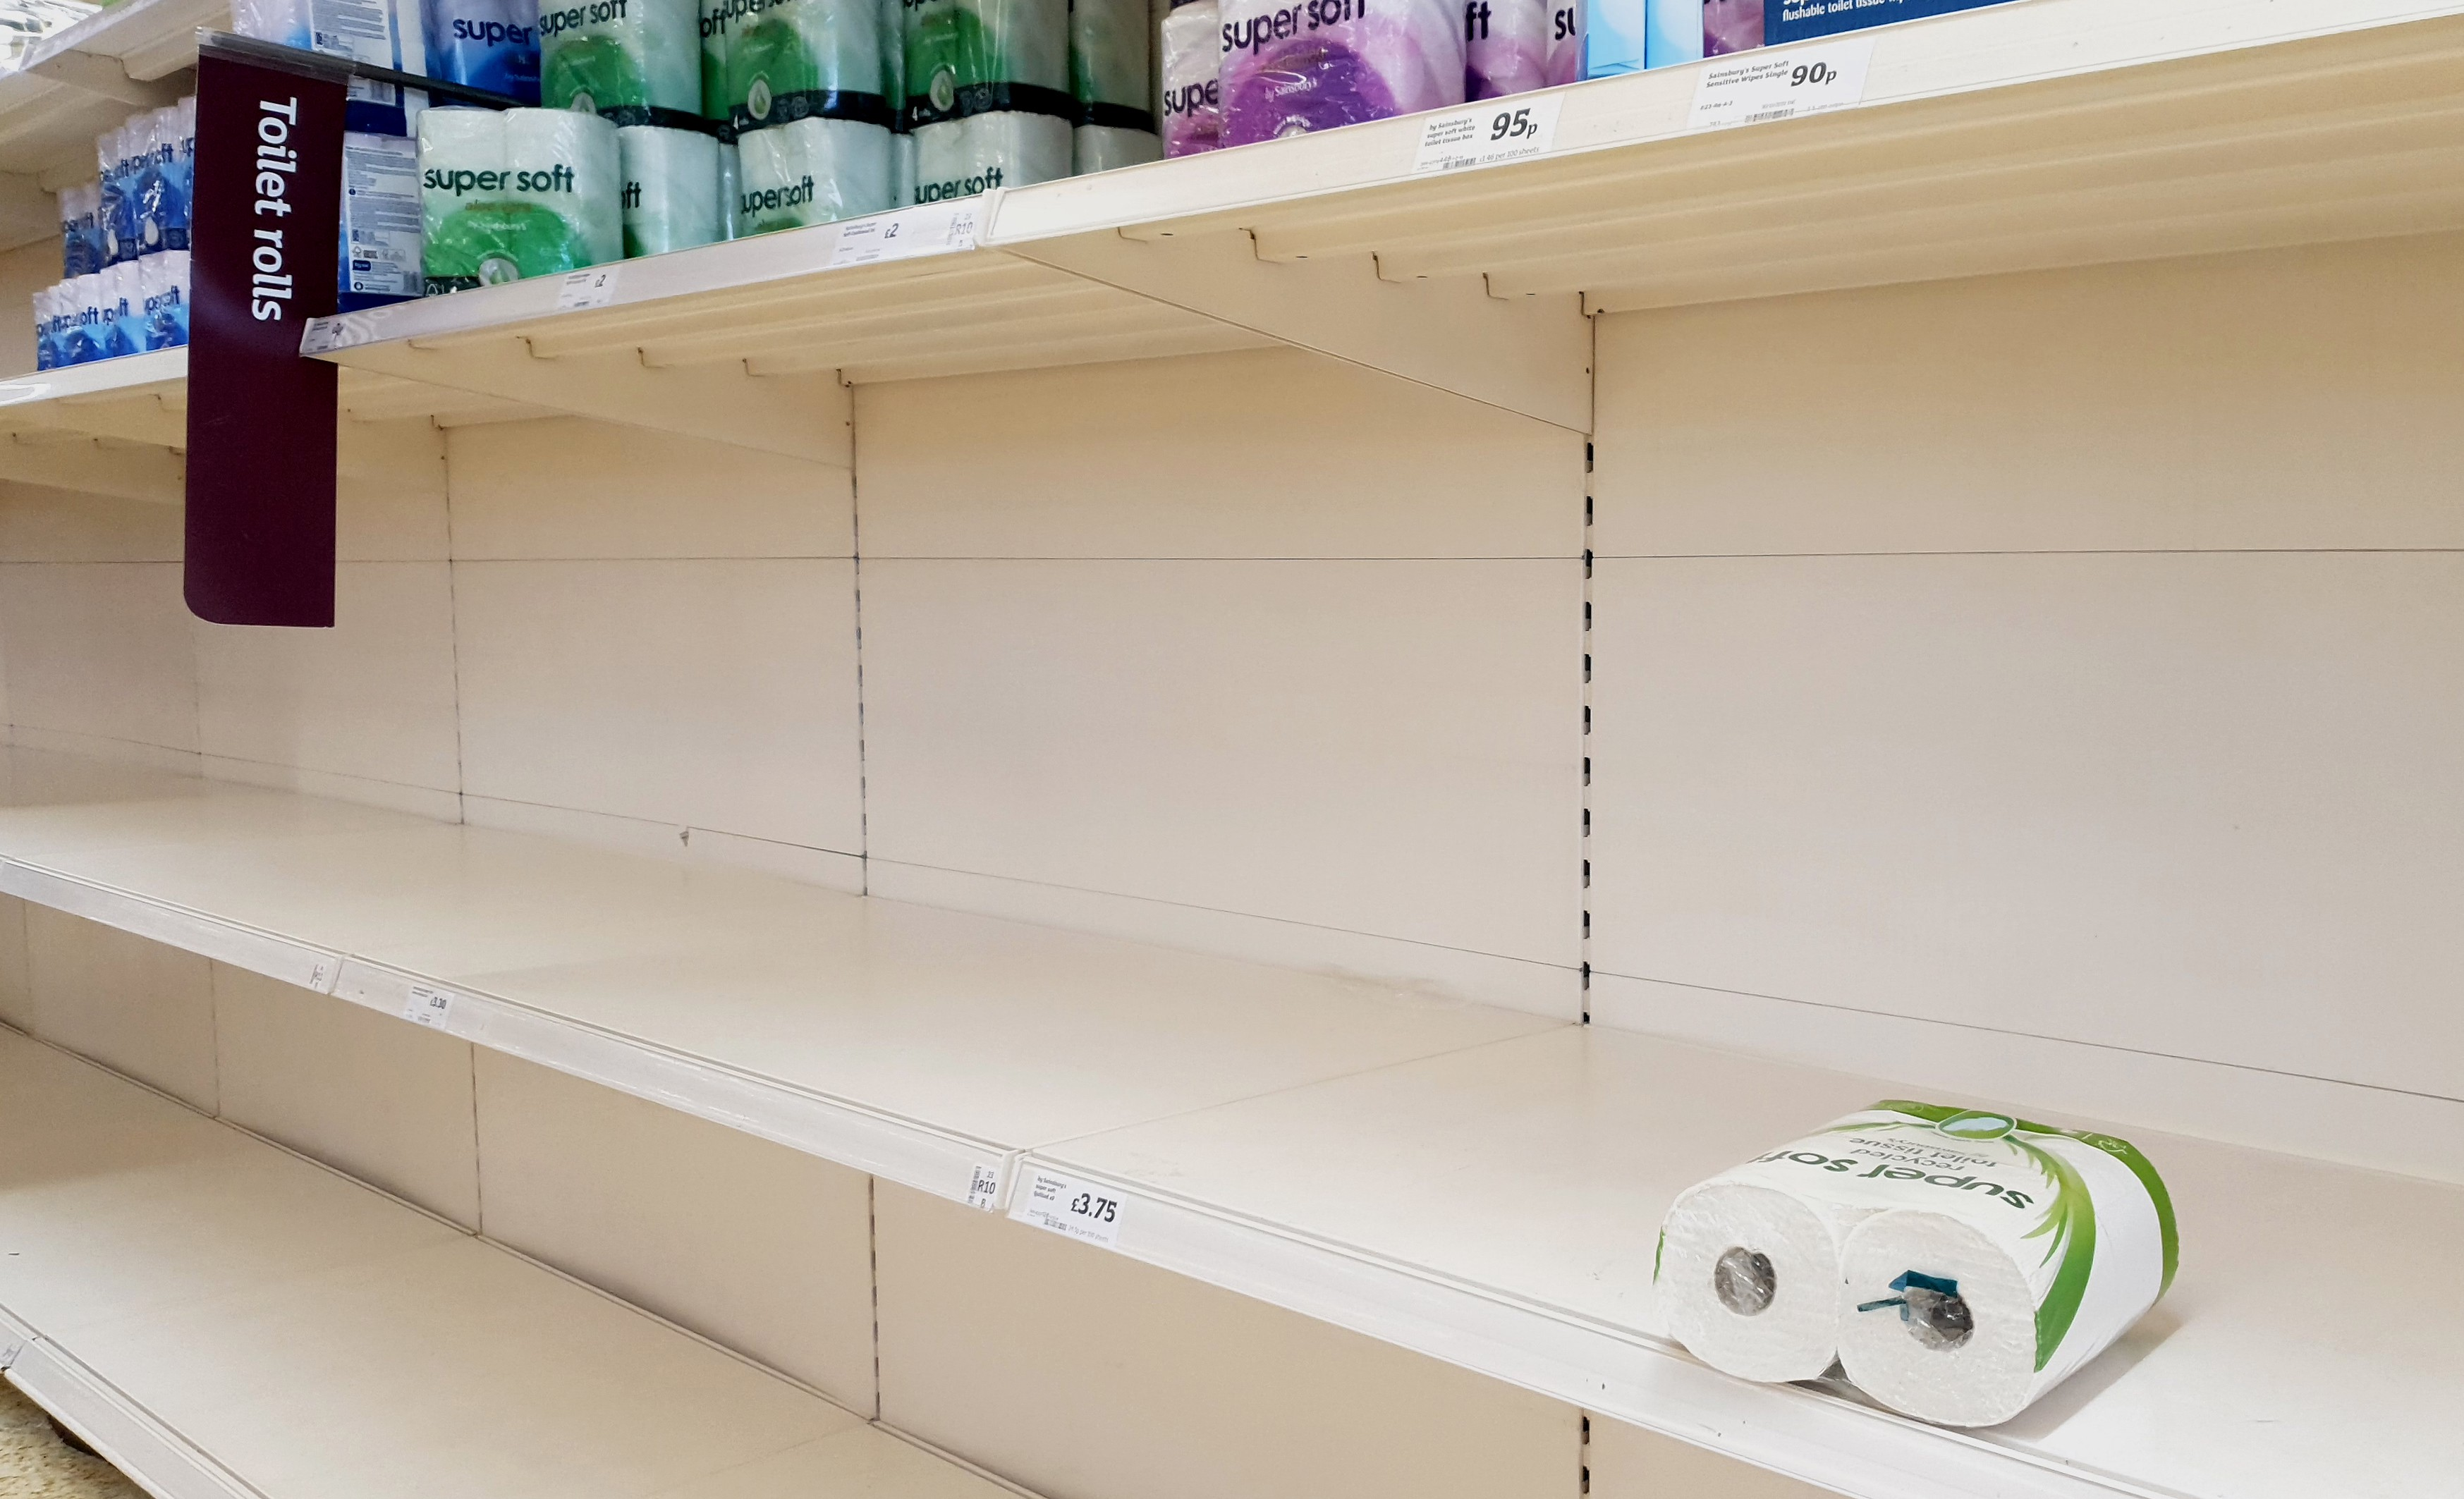 A view of empty shelves as toilet roll is almost sold out in a supermarket.